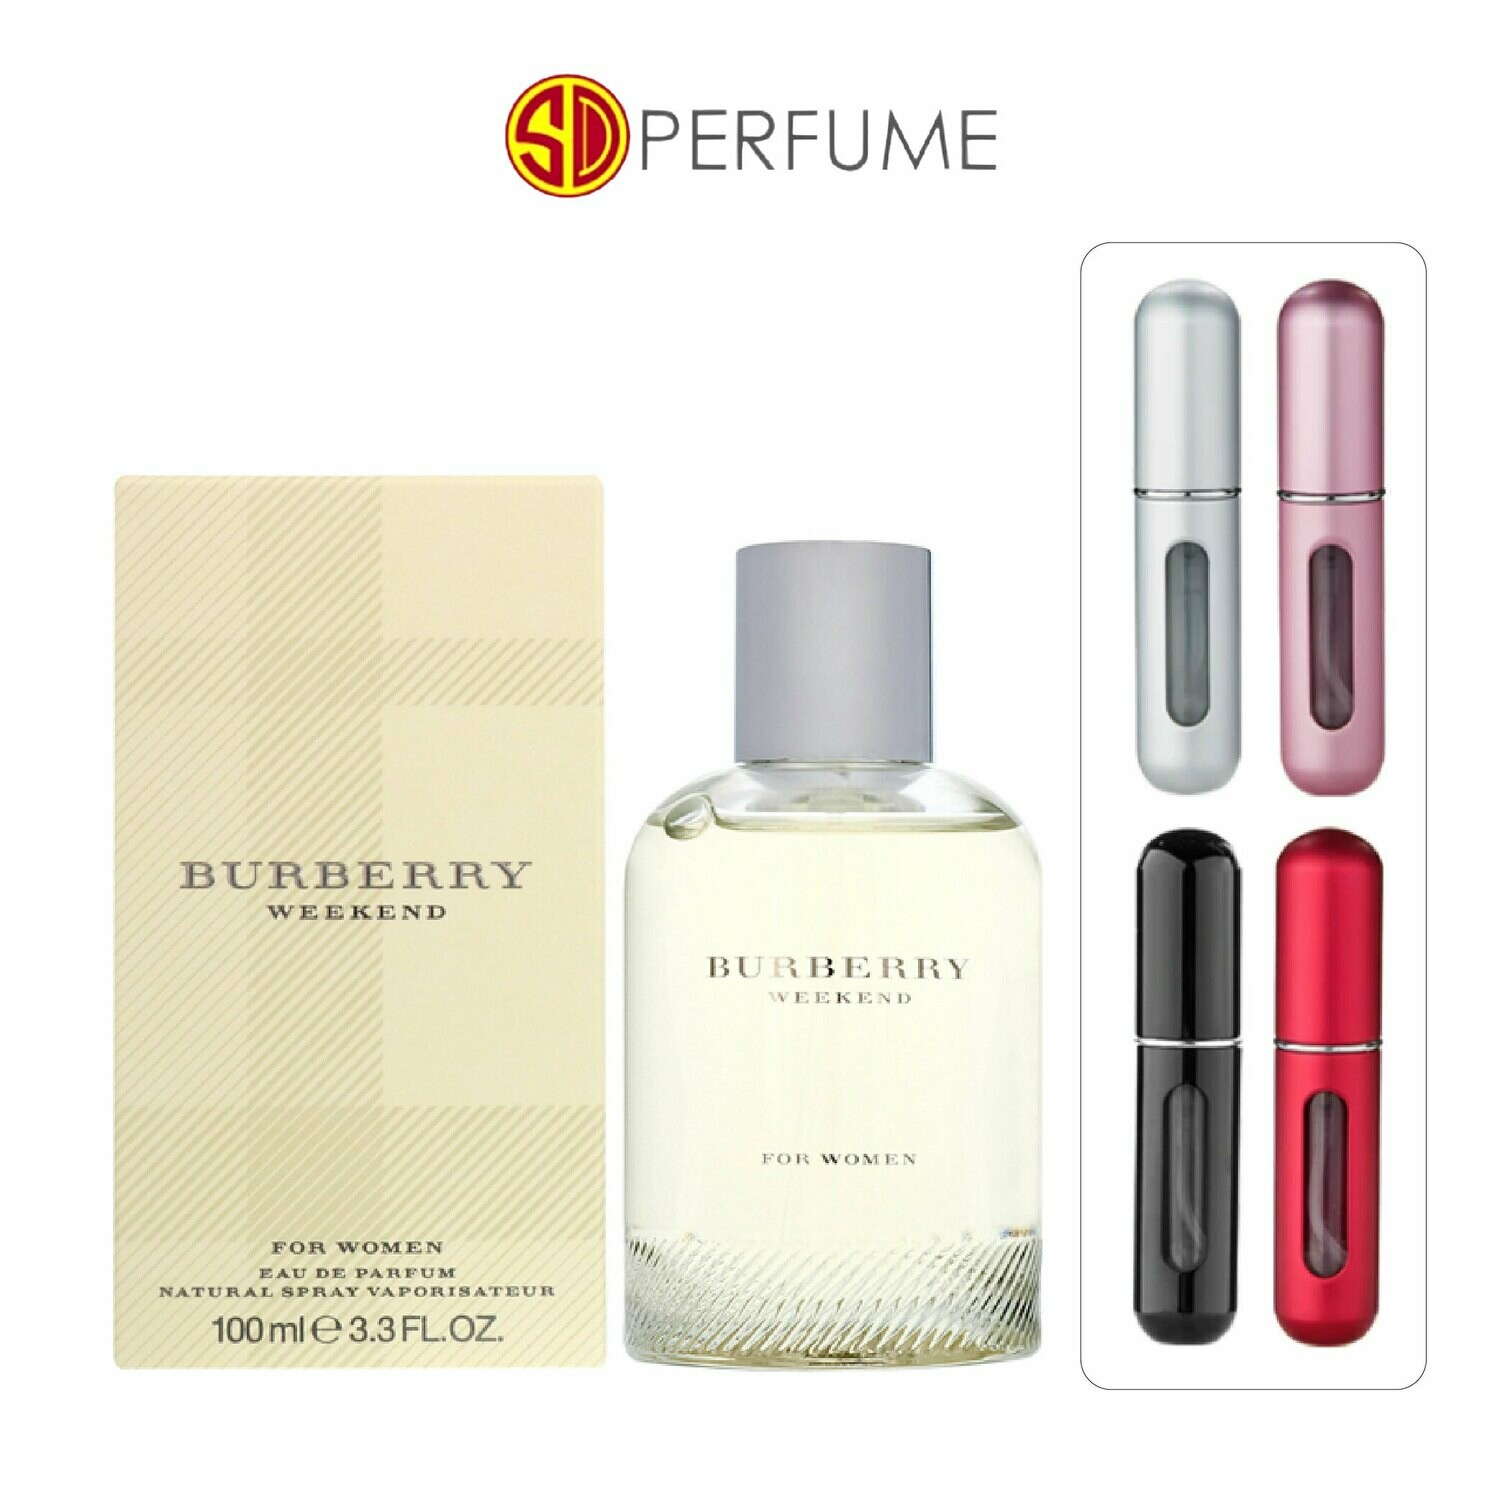 Burberry Weekend EDP Lady 5ml Refill